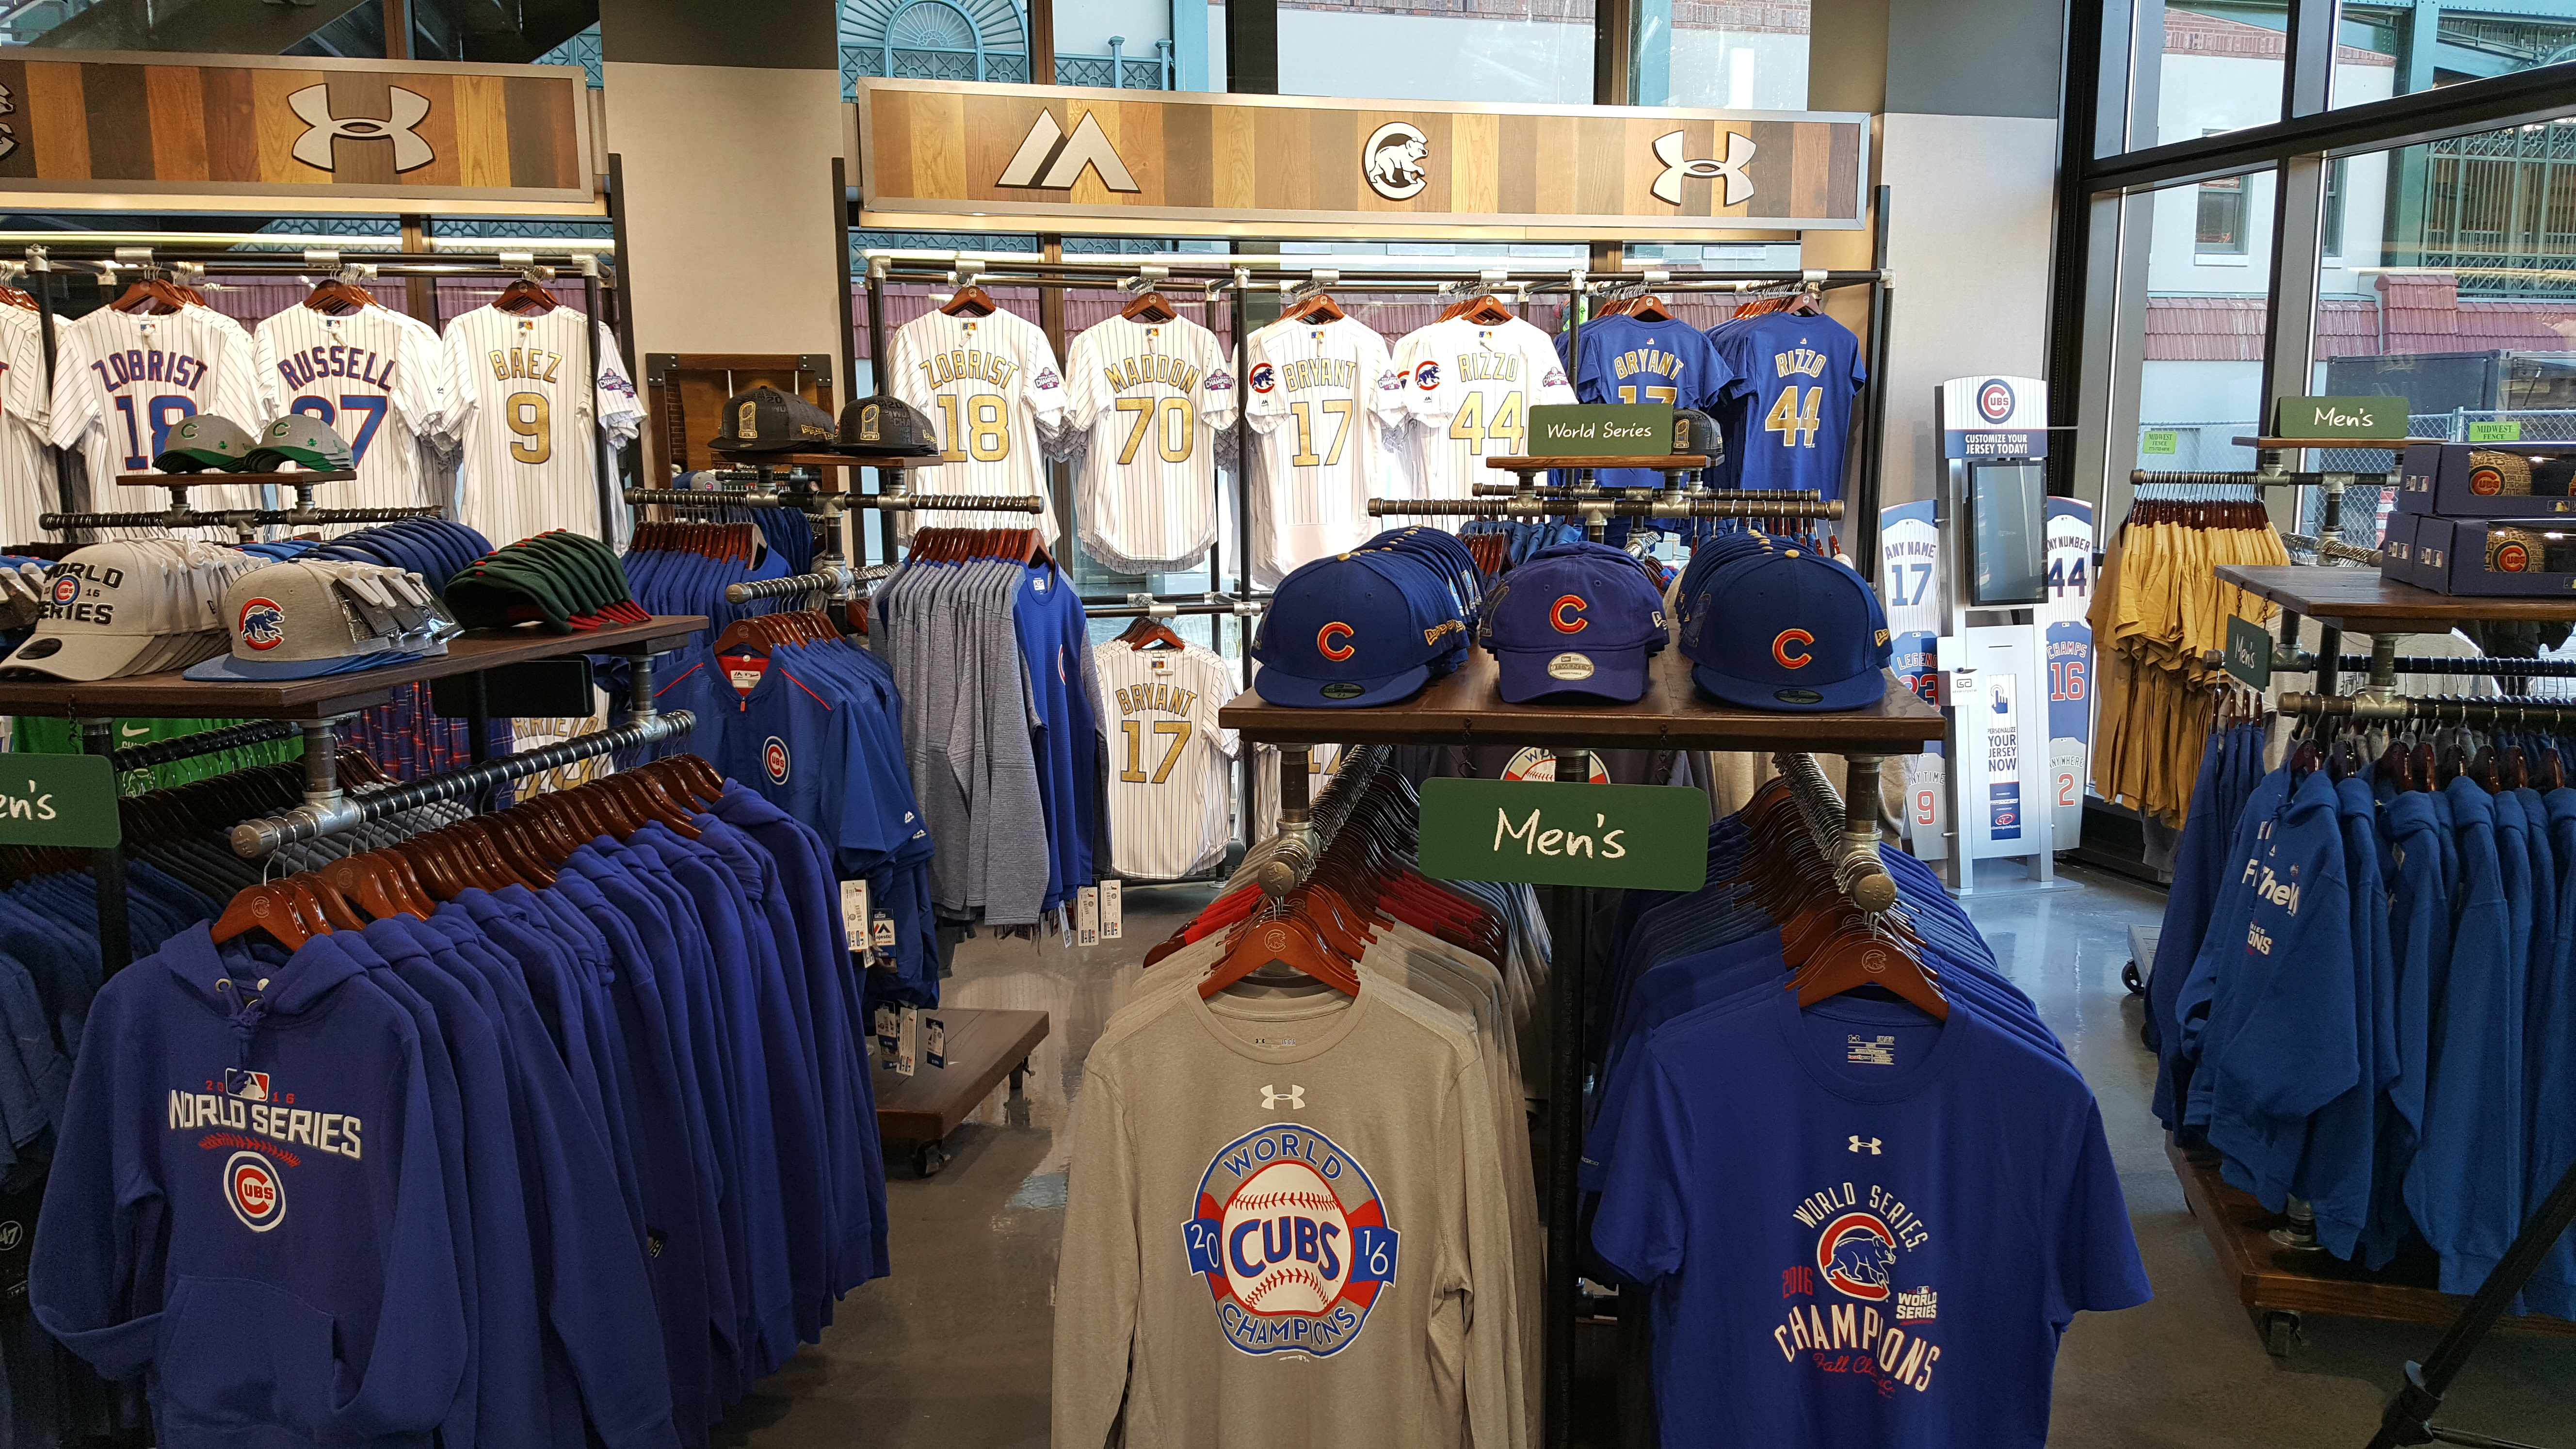 A Peek Inside The Cool New Cubs Store - Bleed Cubbie Blue